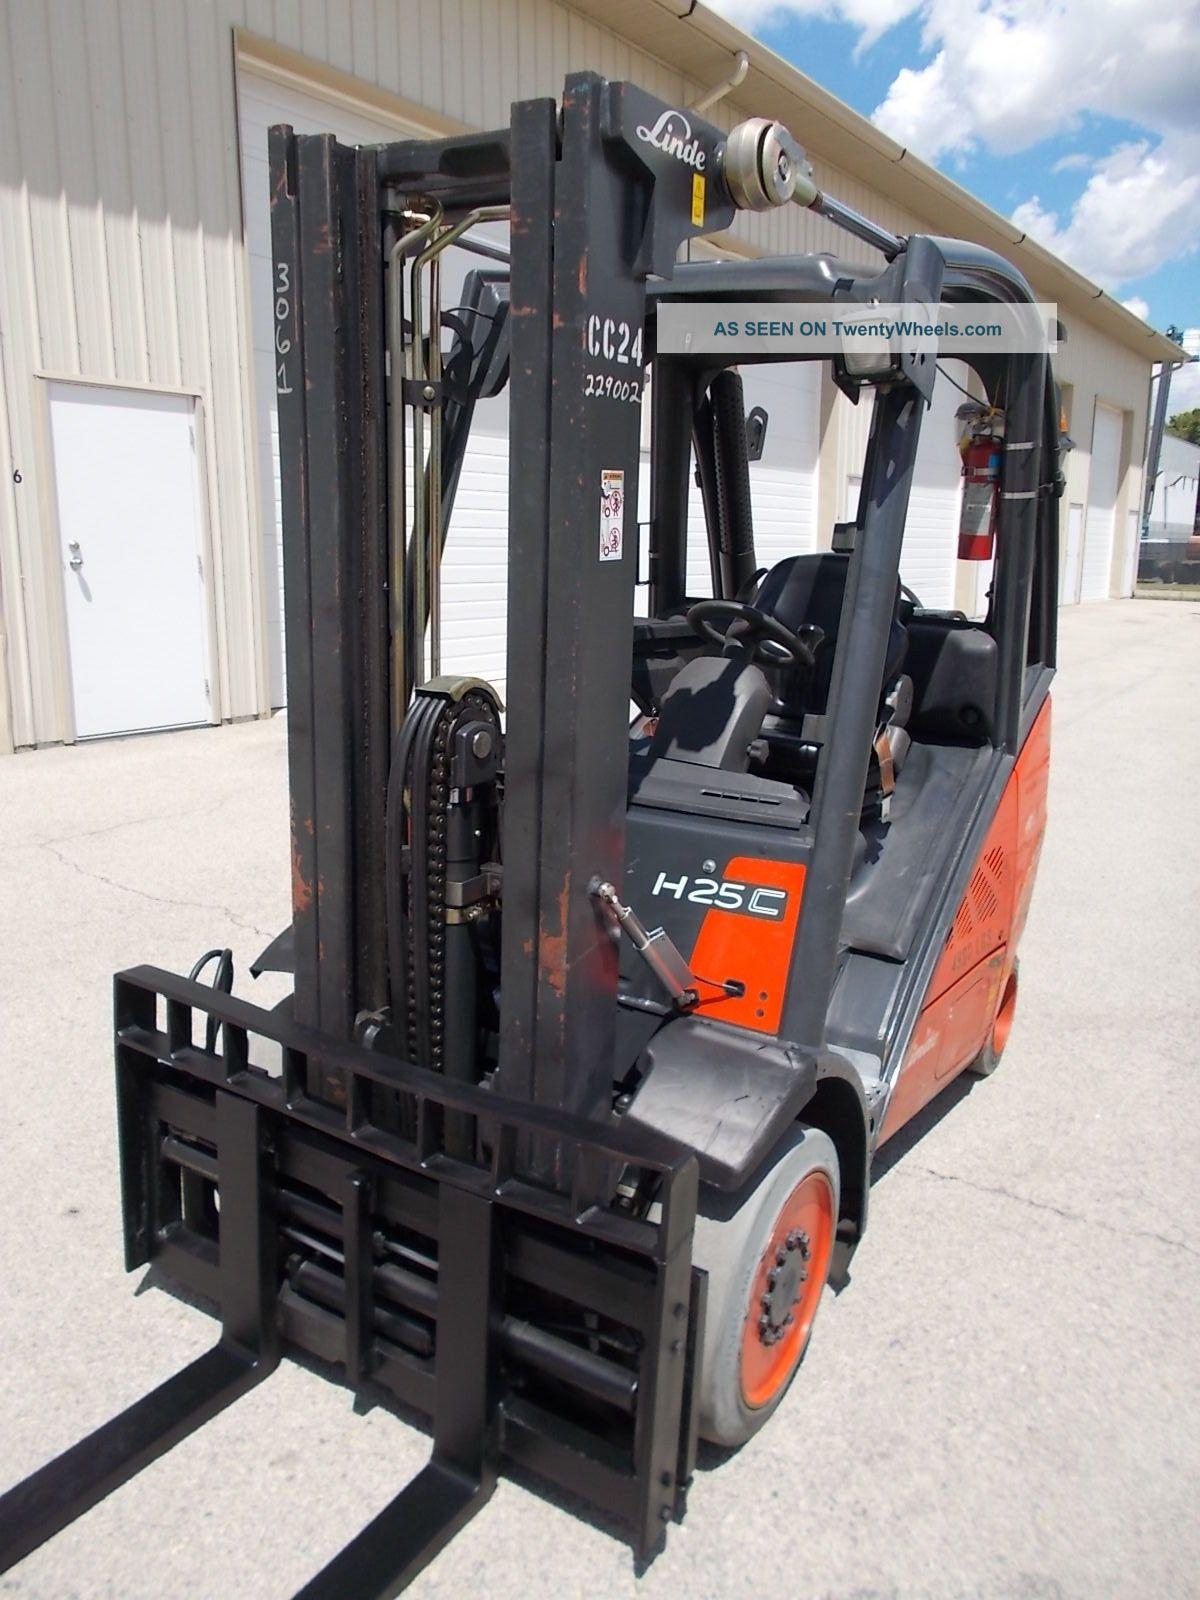 2007 Linde H25t Forklift Lpg 3 Stage Mast Lift Truck Tow